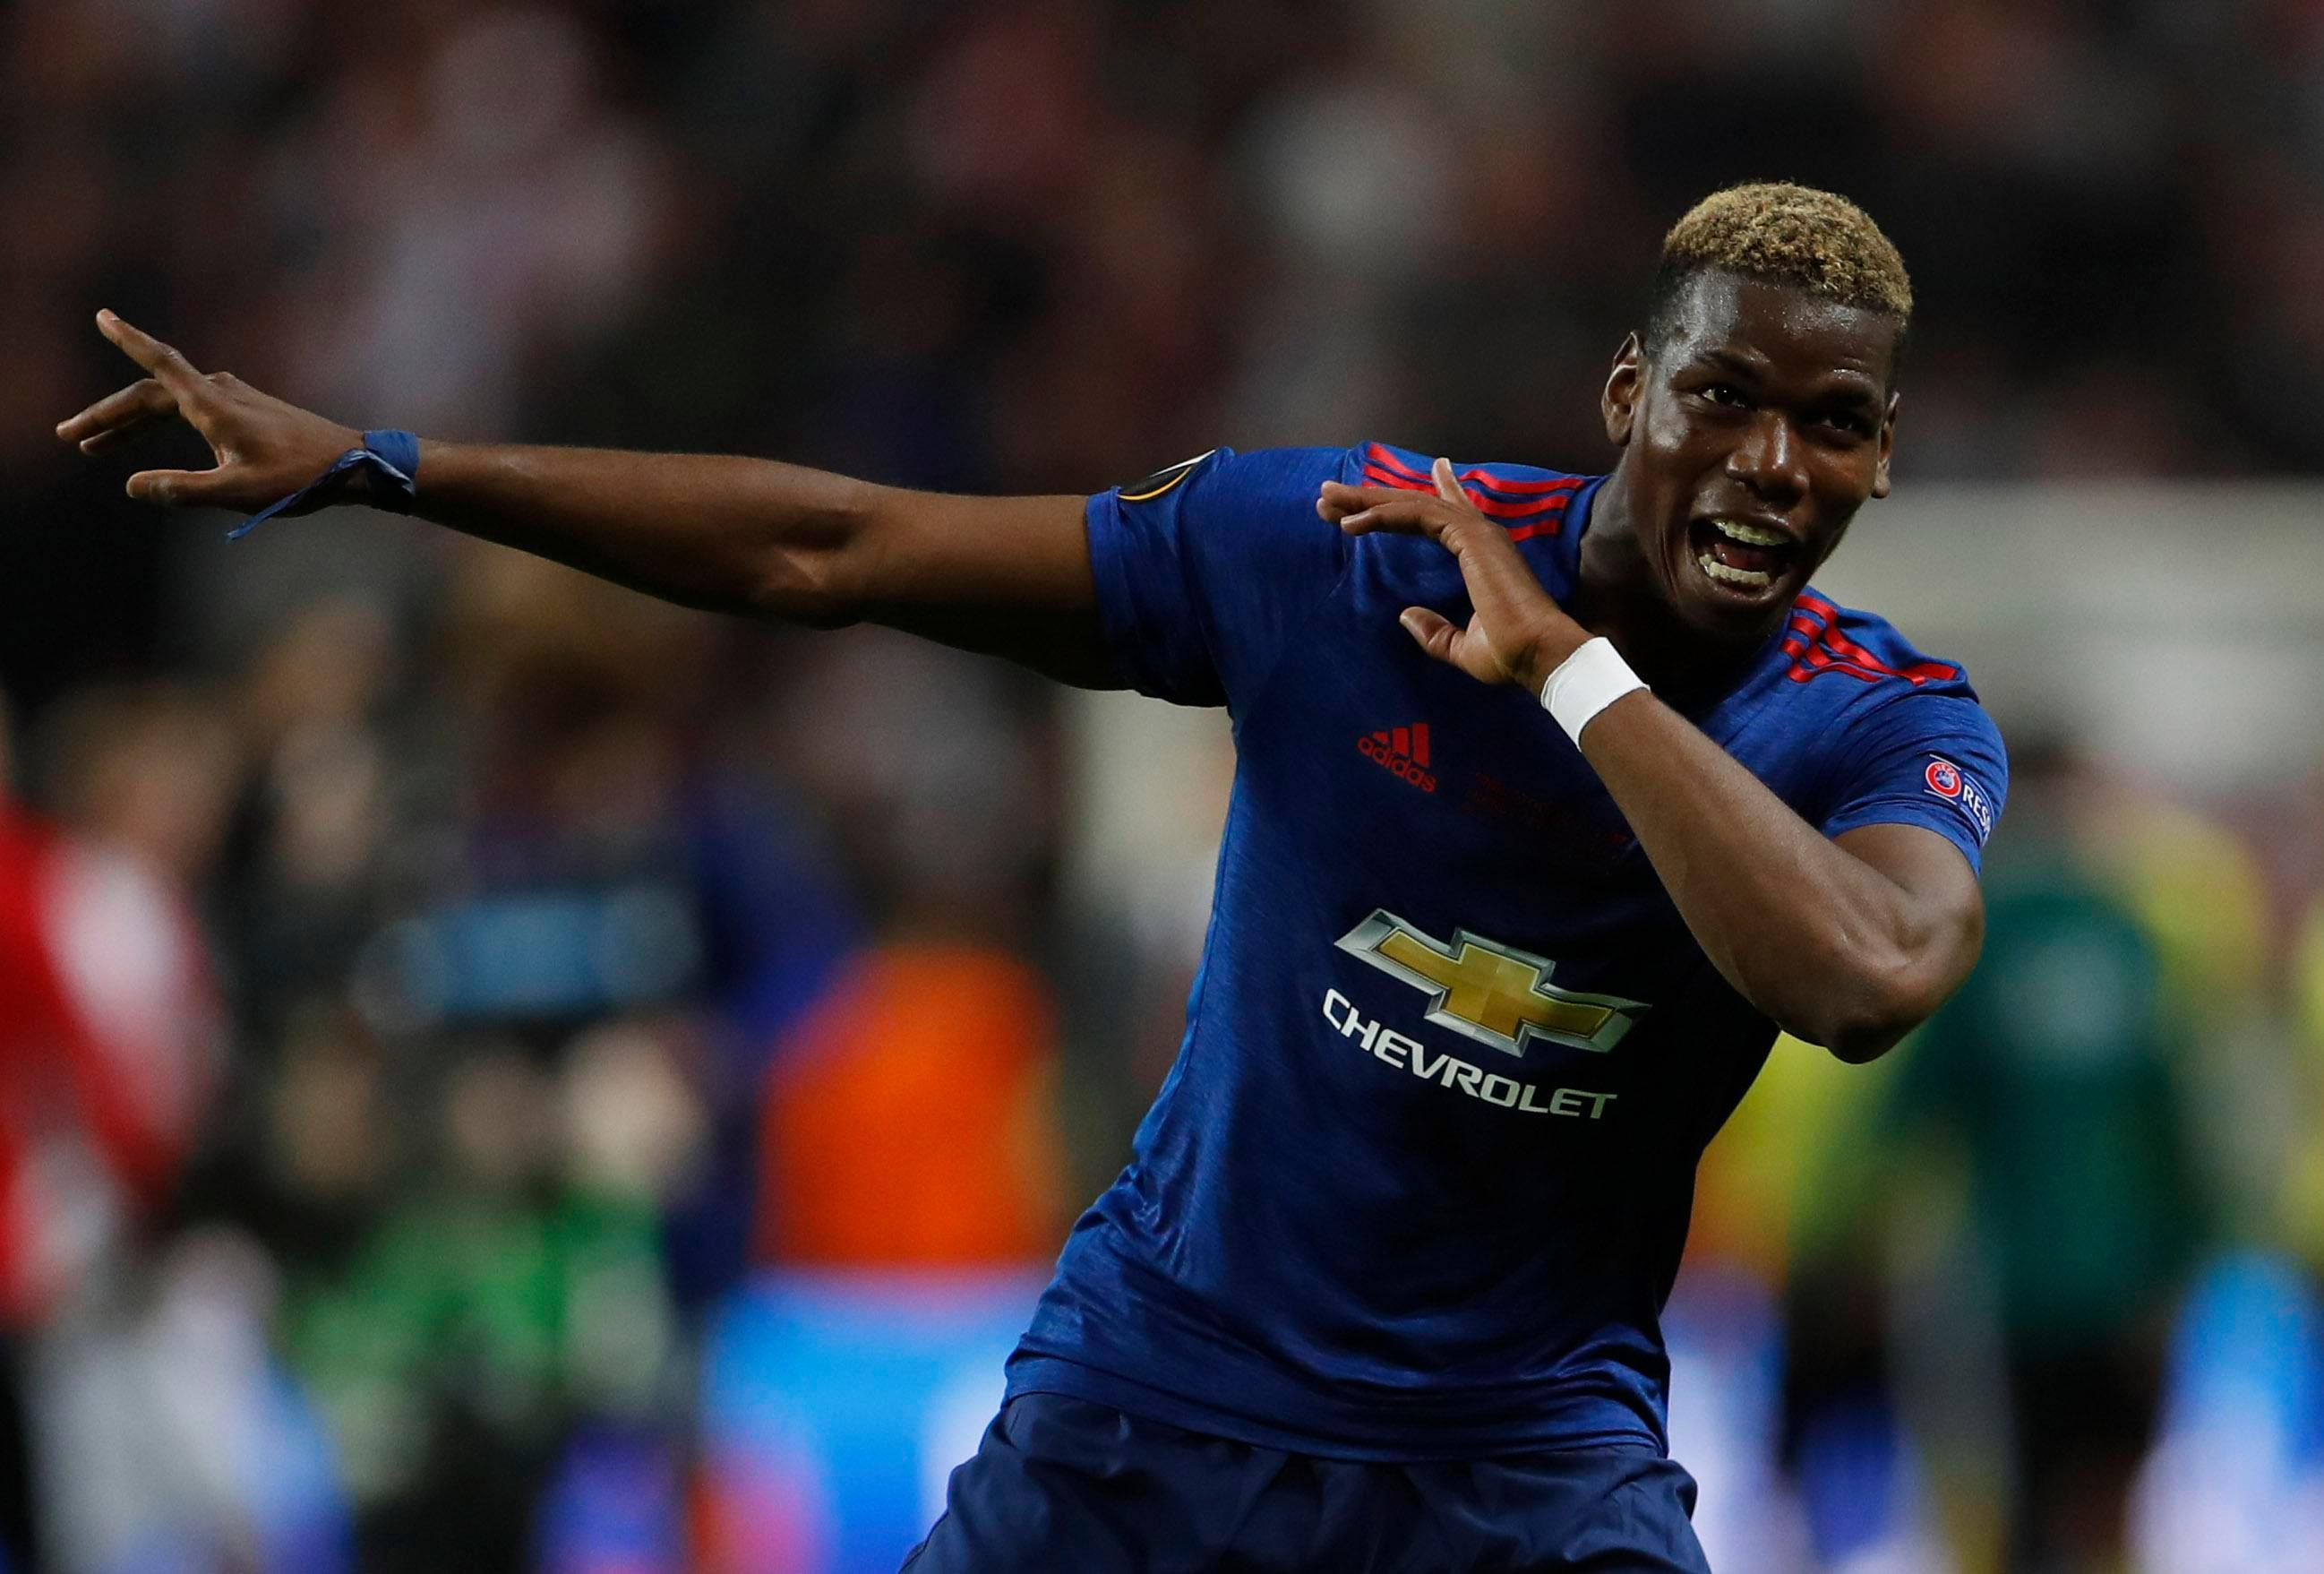 Paul Pogba celebrated victory in true fashion as he produced his infamous Dab dance